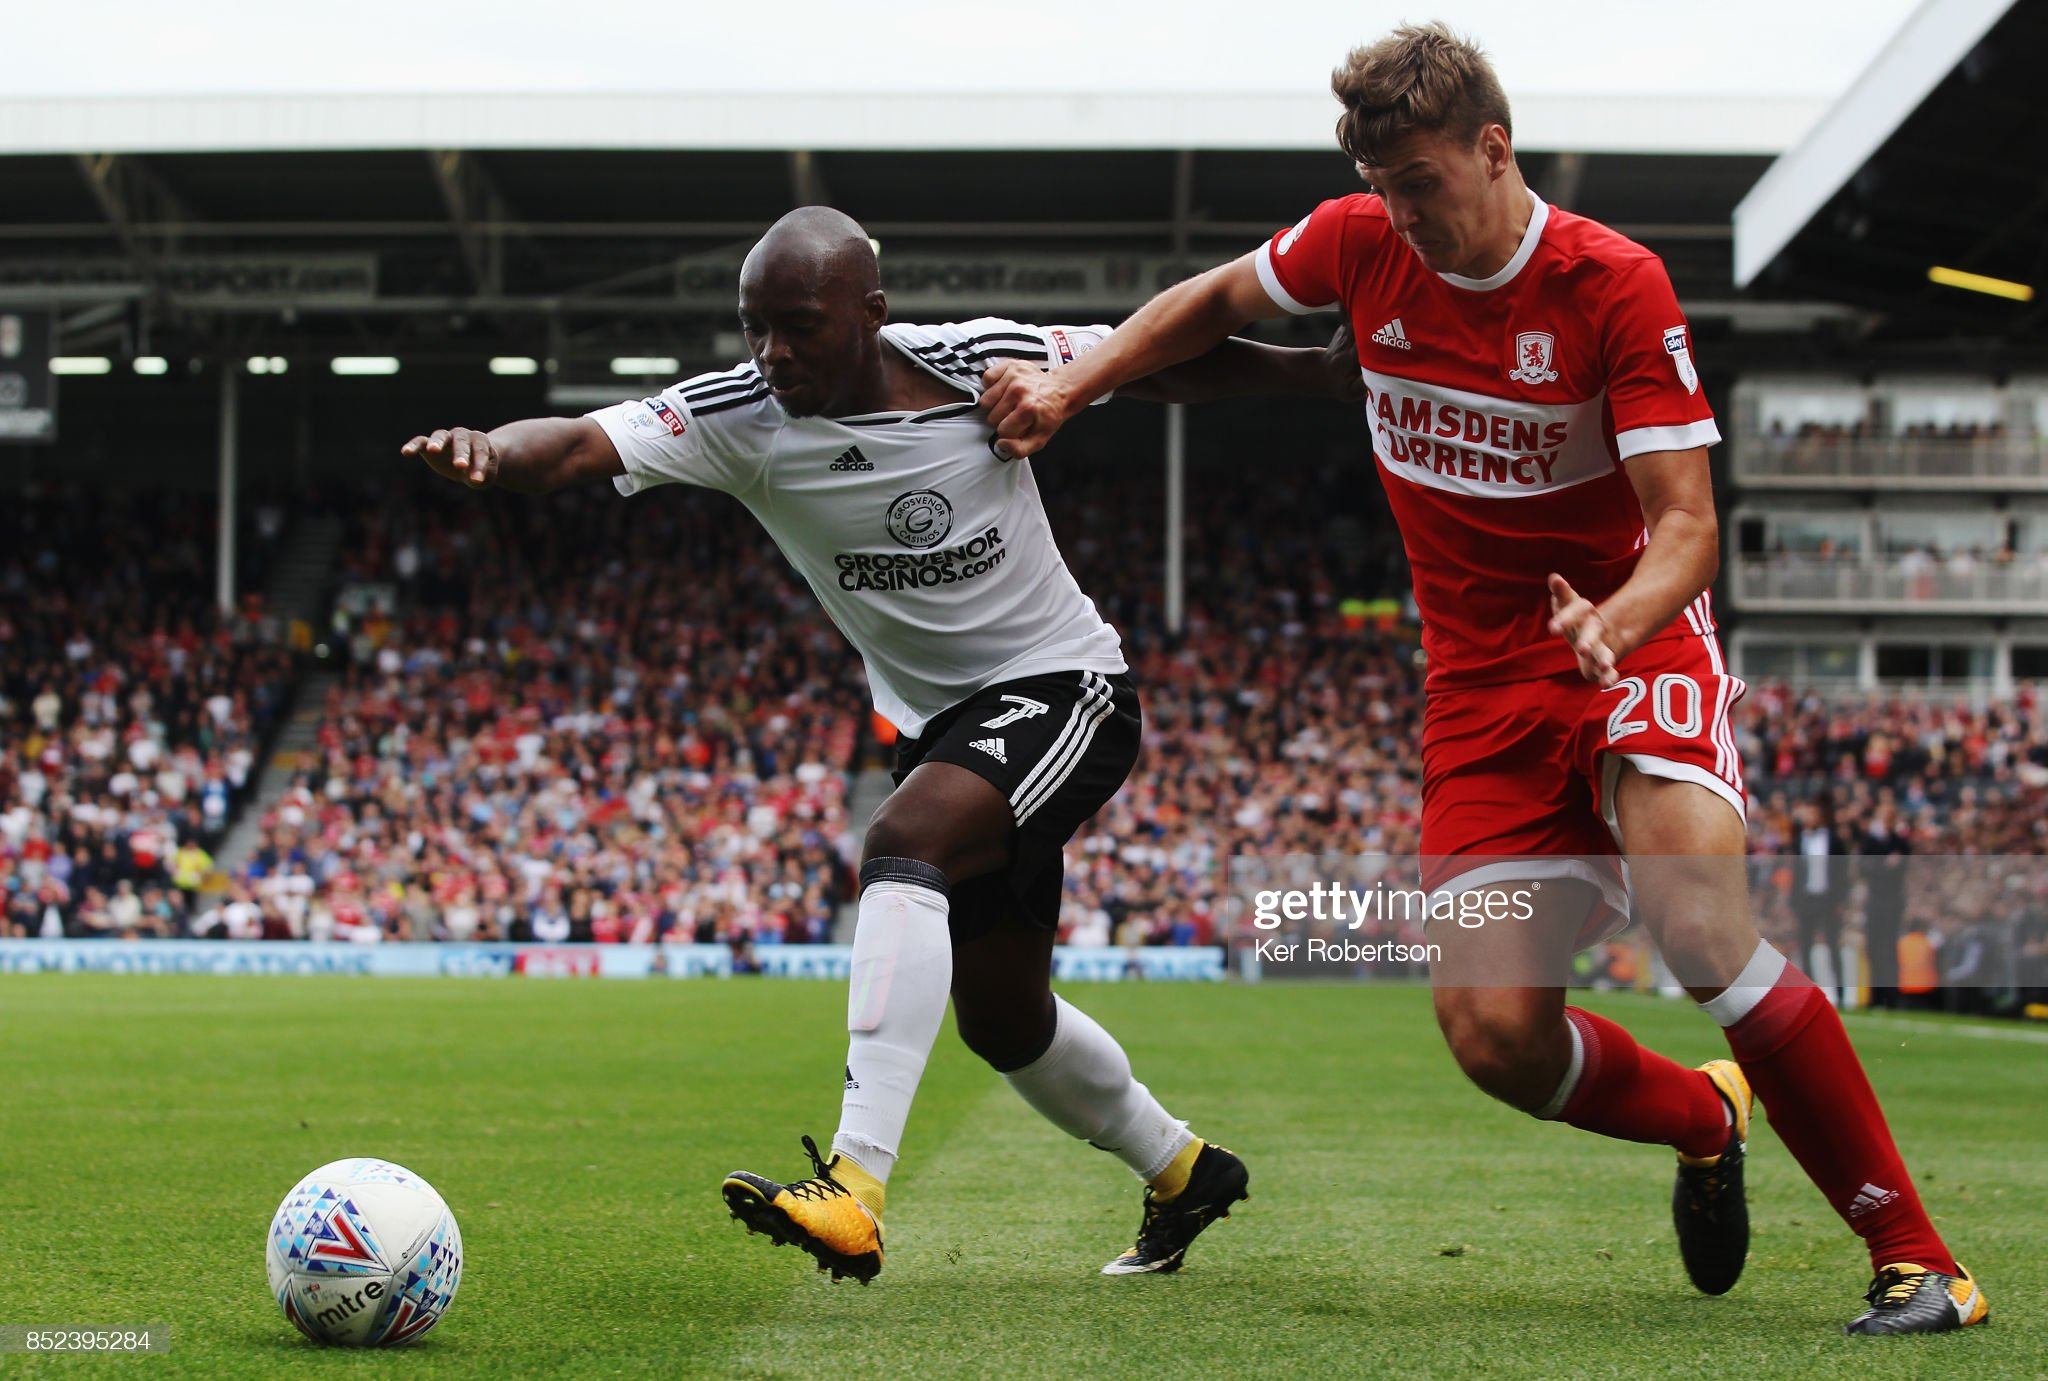 Fulham v Middlesbrough preview, prediction and odds